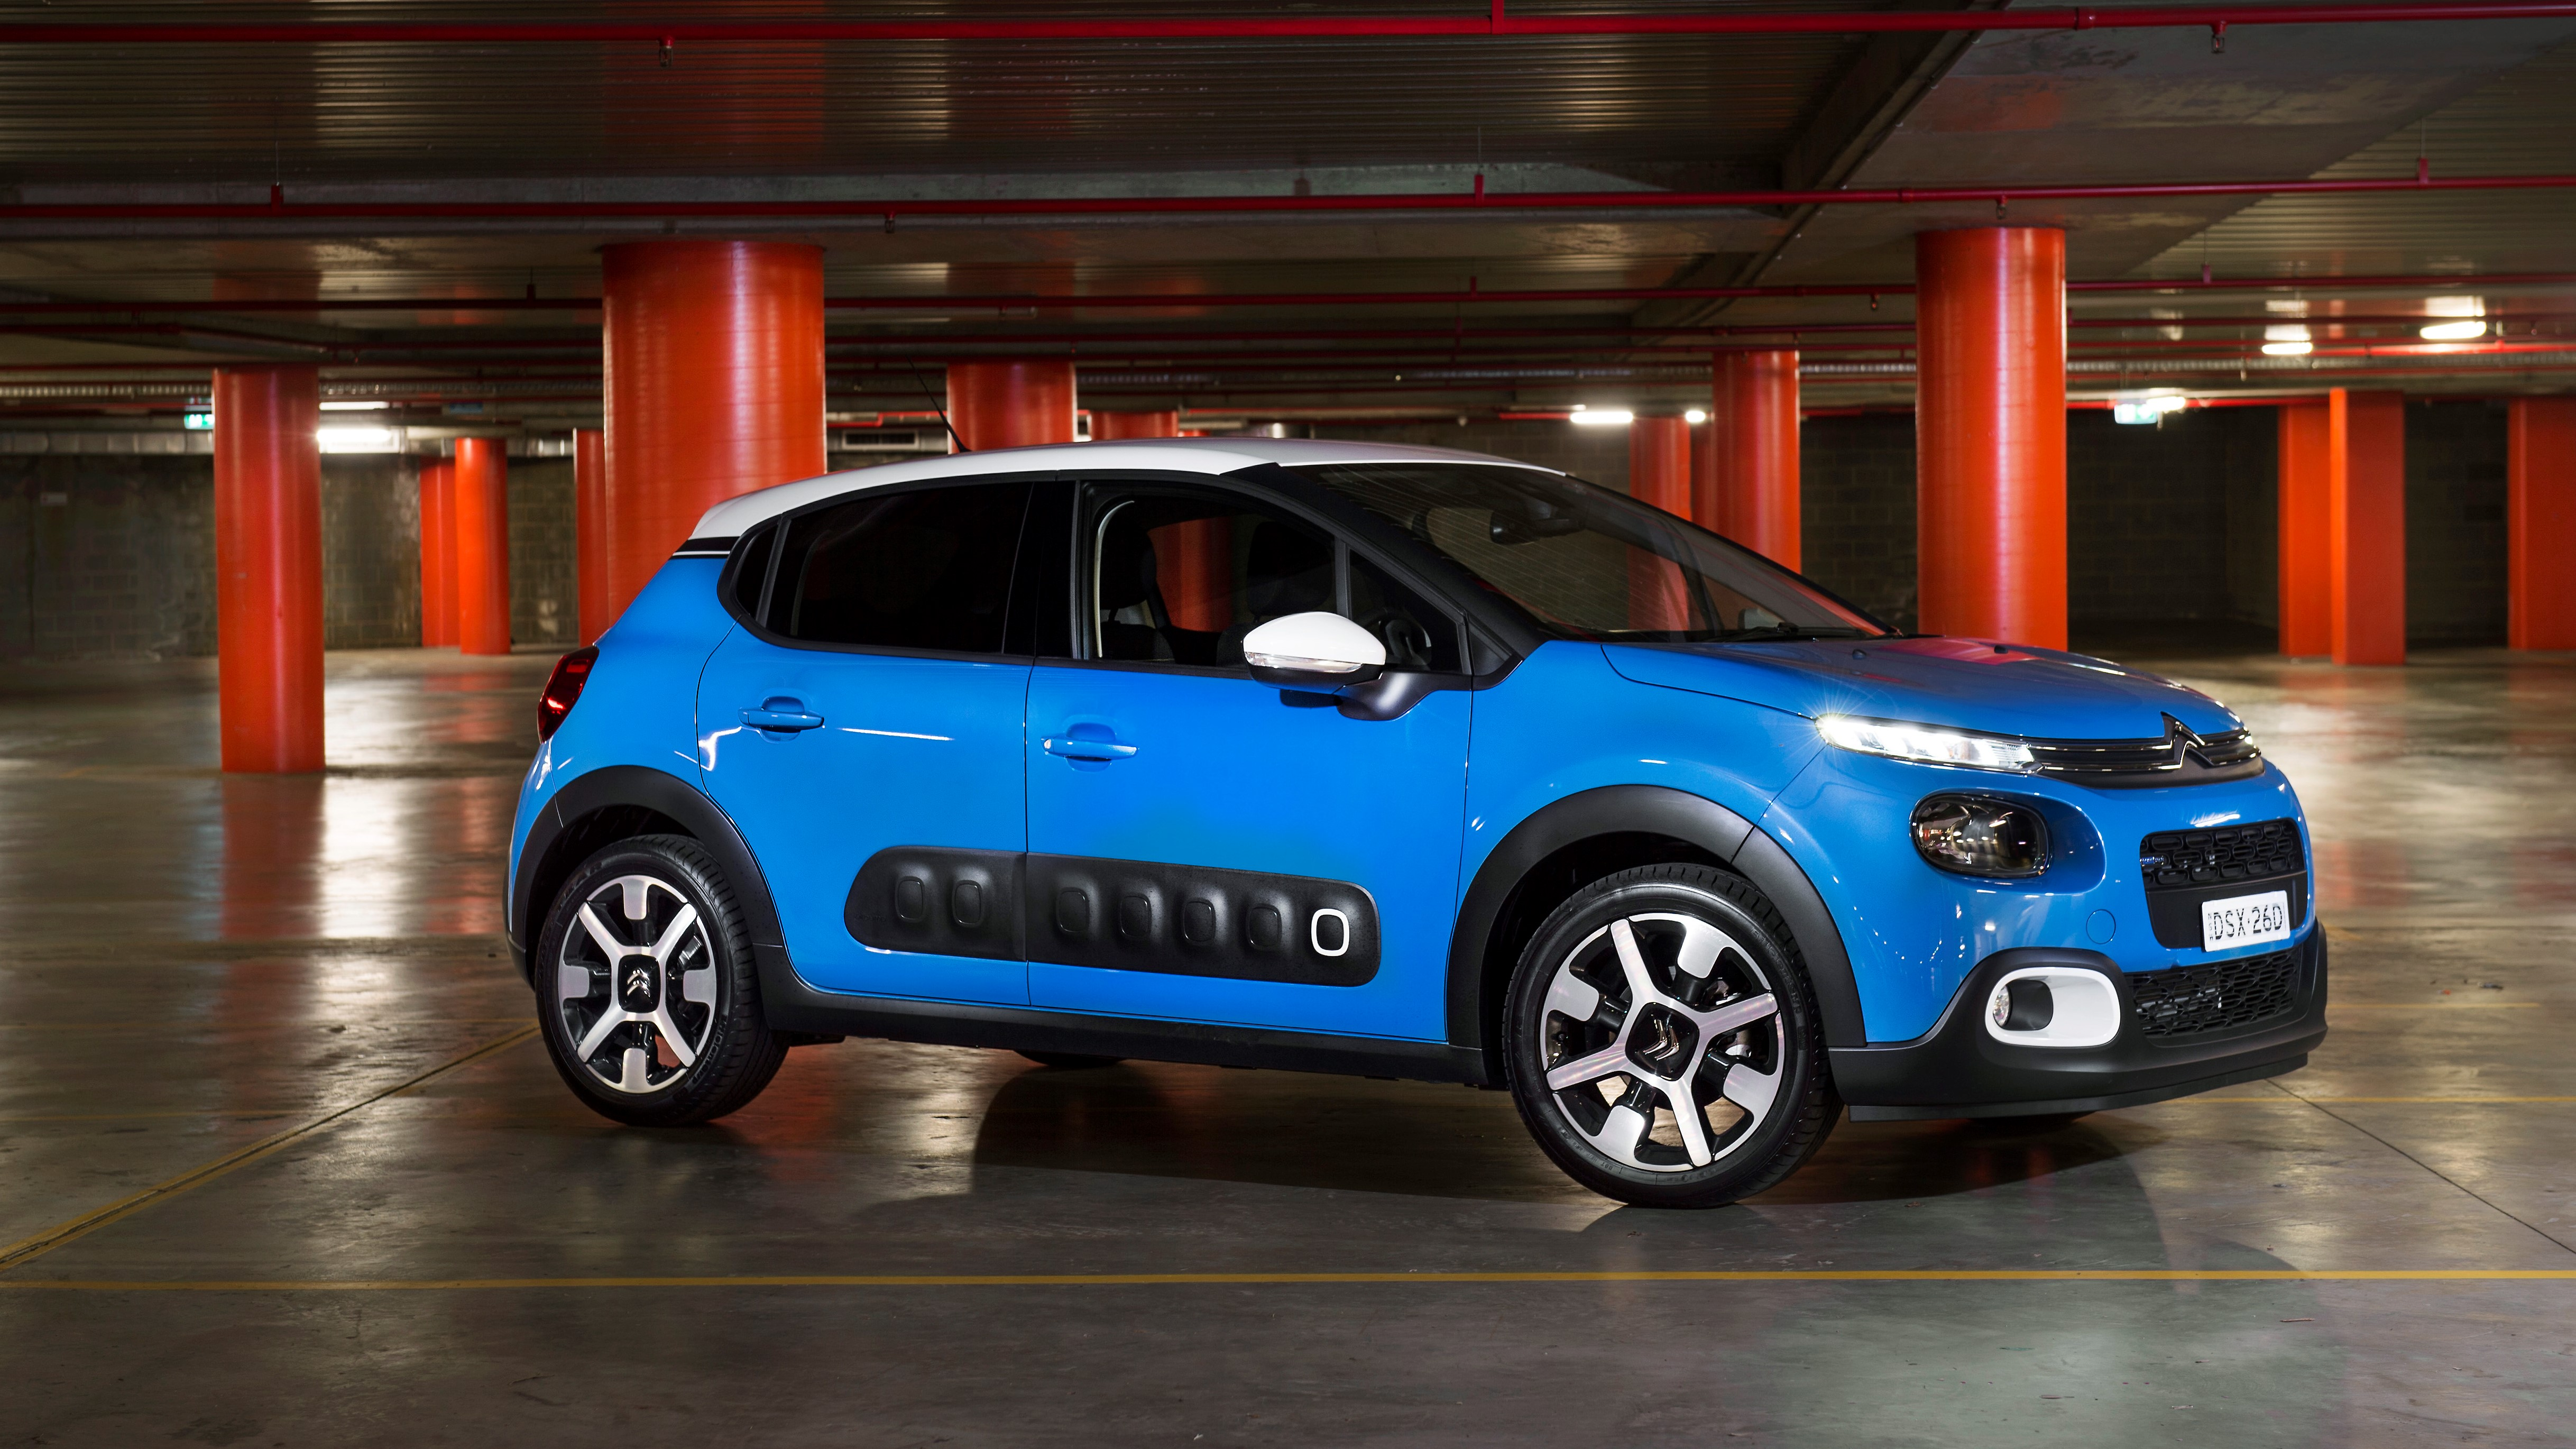 2018 Citroen C3 Shine she says, he says review